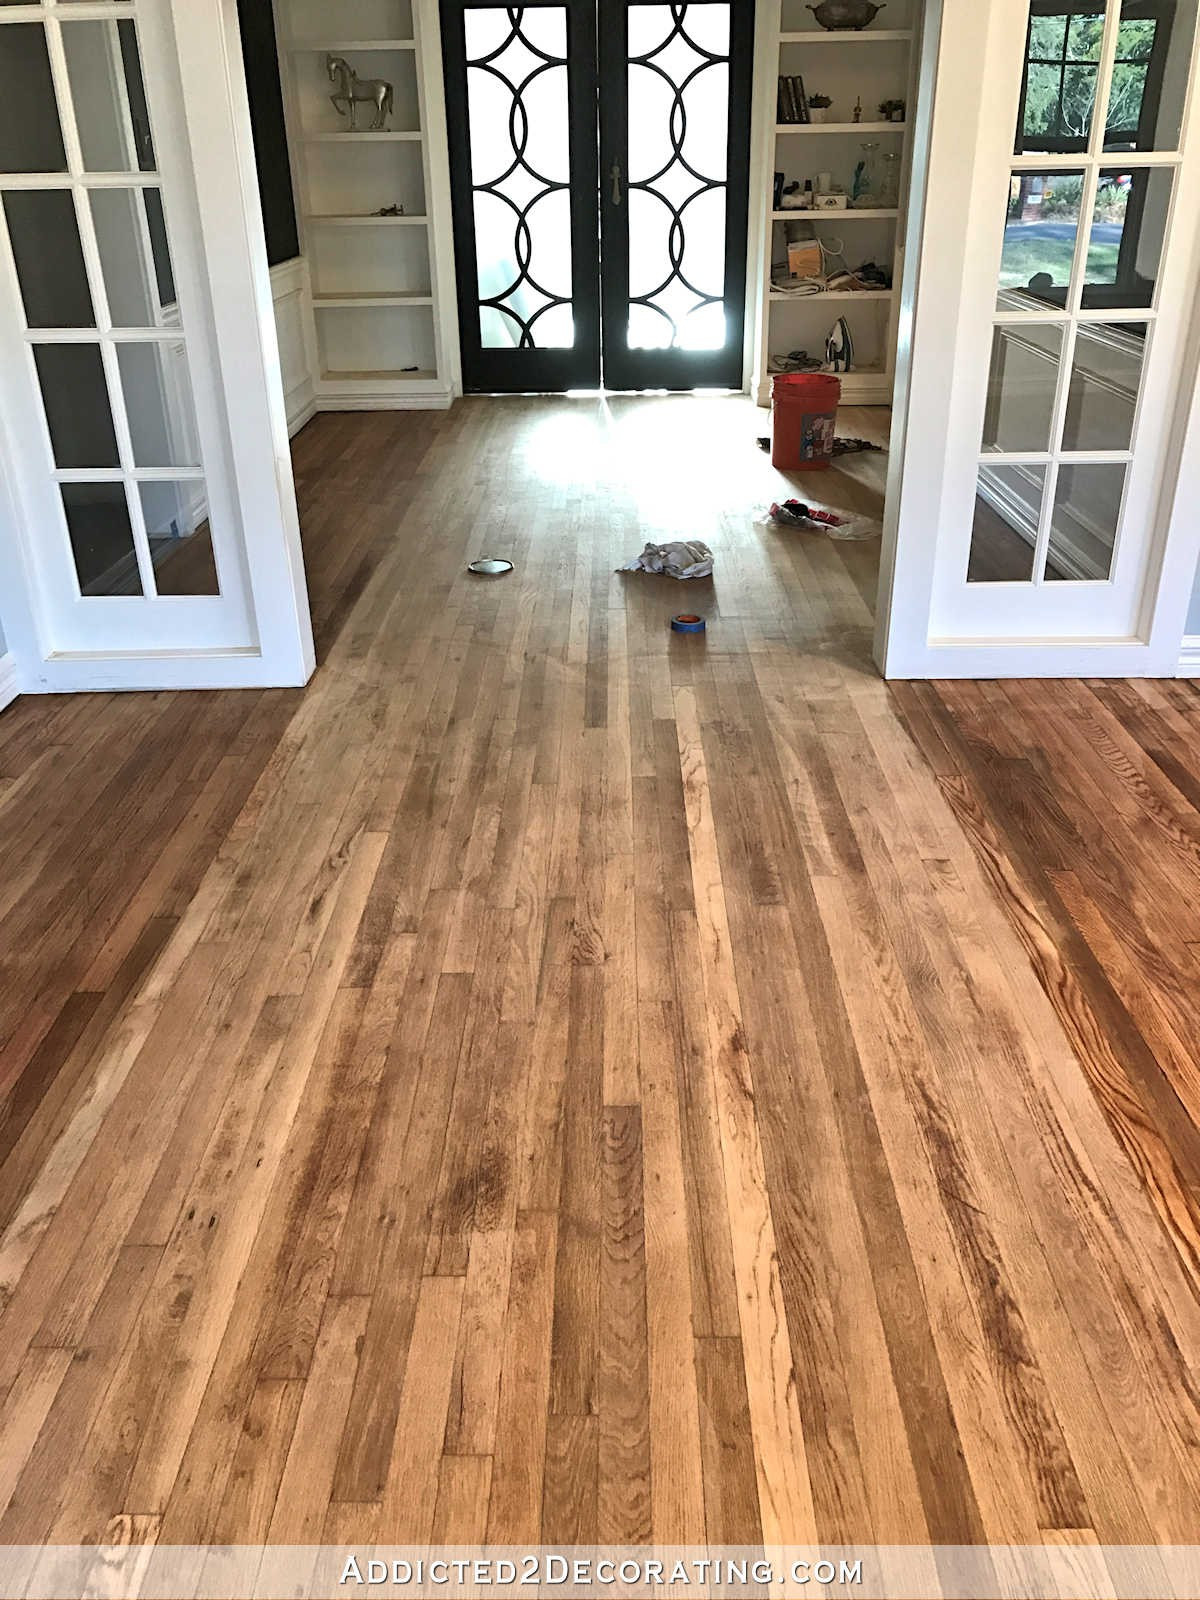 diy hardwood floor cost of 19 unique how much does it cost to refinish hardwood floors gallery with how much does it cost to refinish hardwood floors unique adventures in staining my red oak